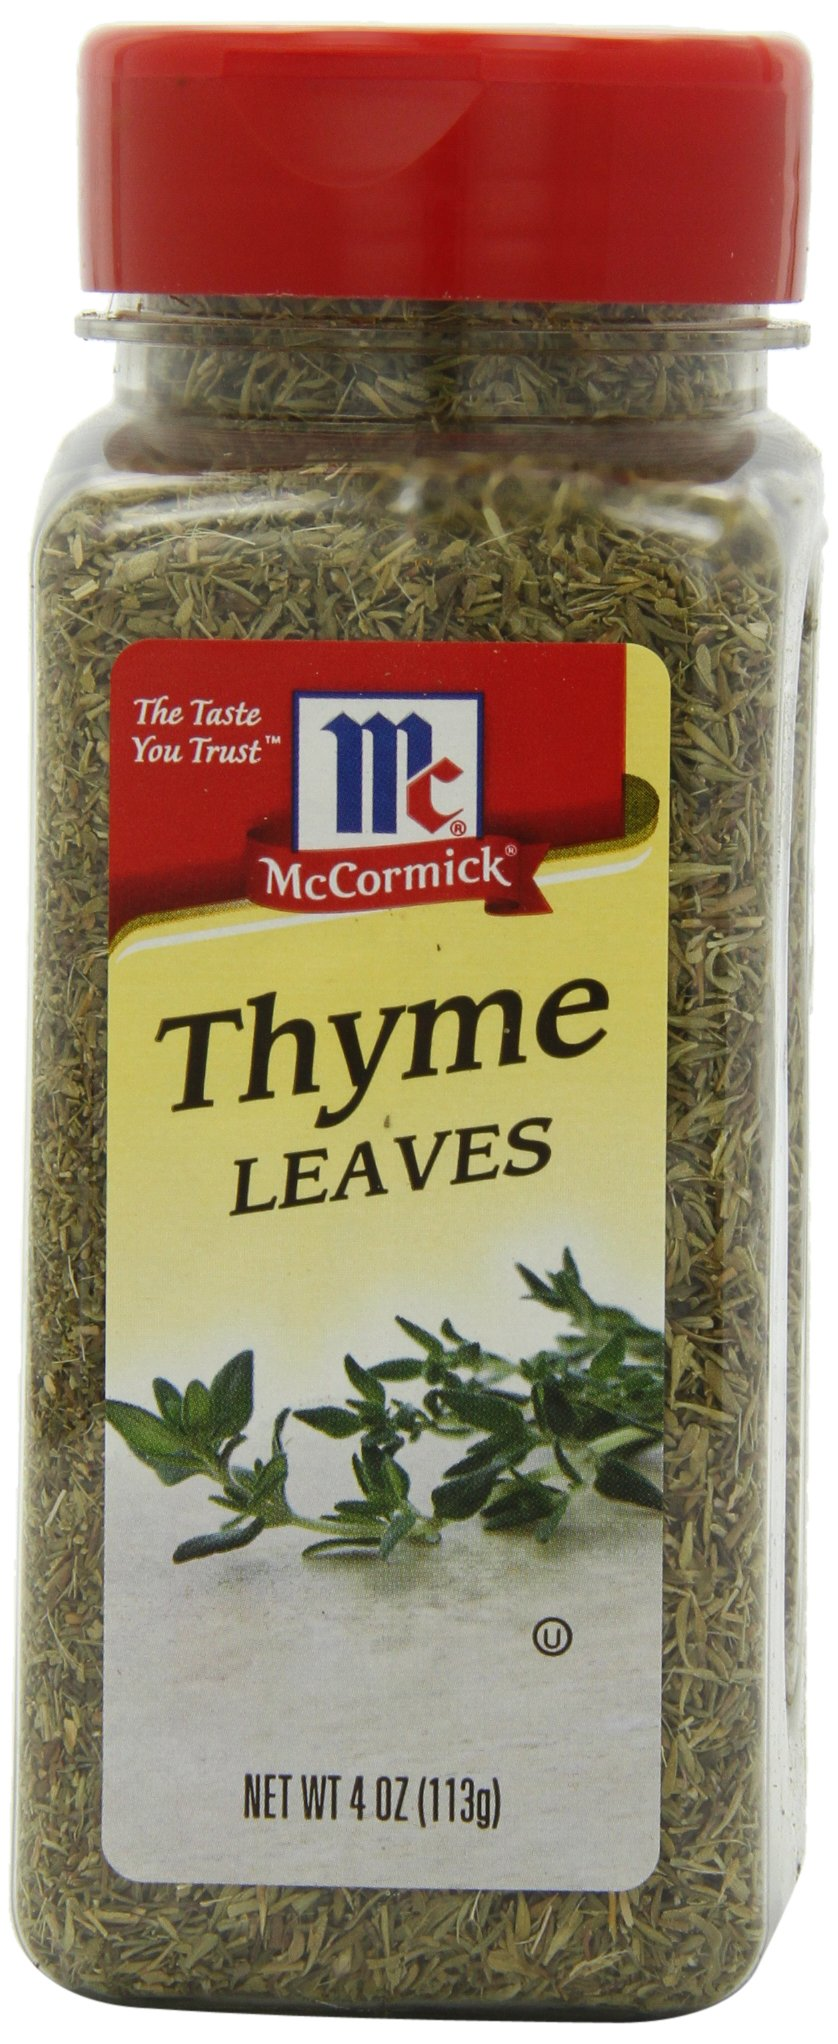 McCormick Thyme Leaves, 4 oz (Case of 12)